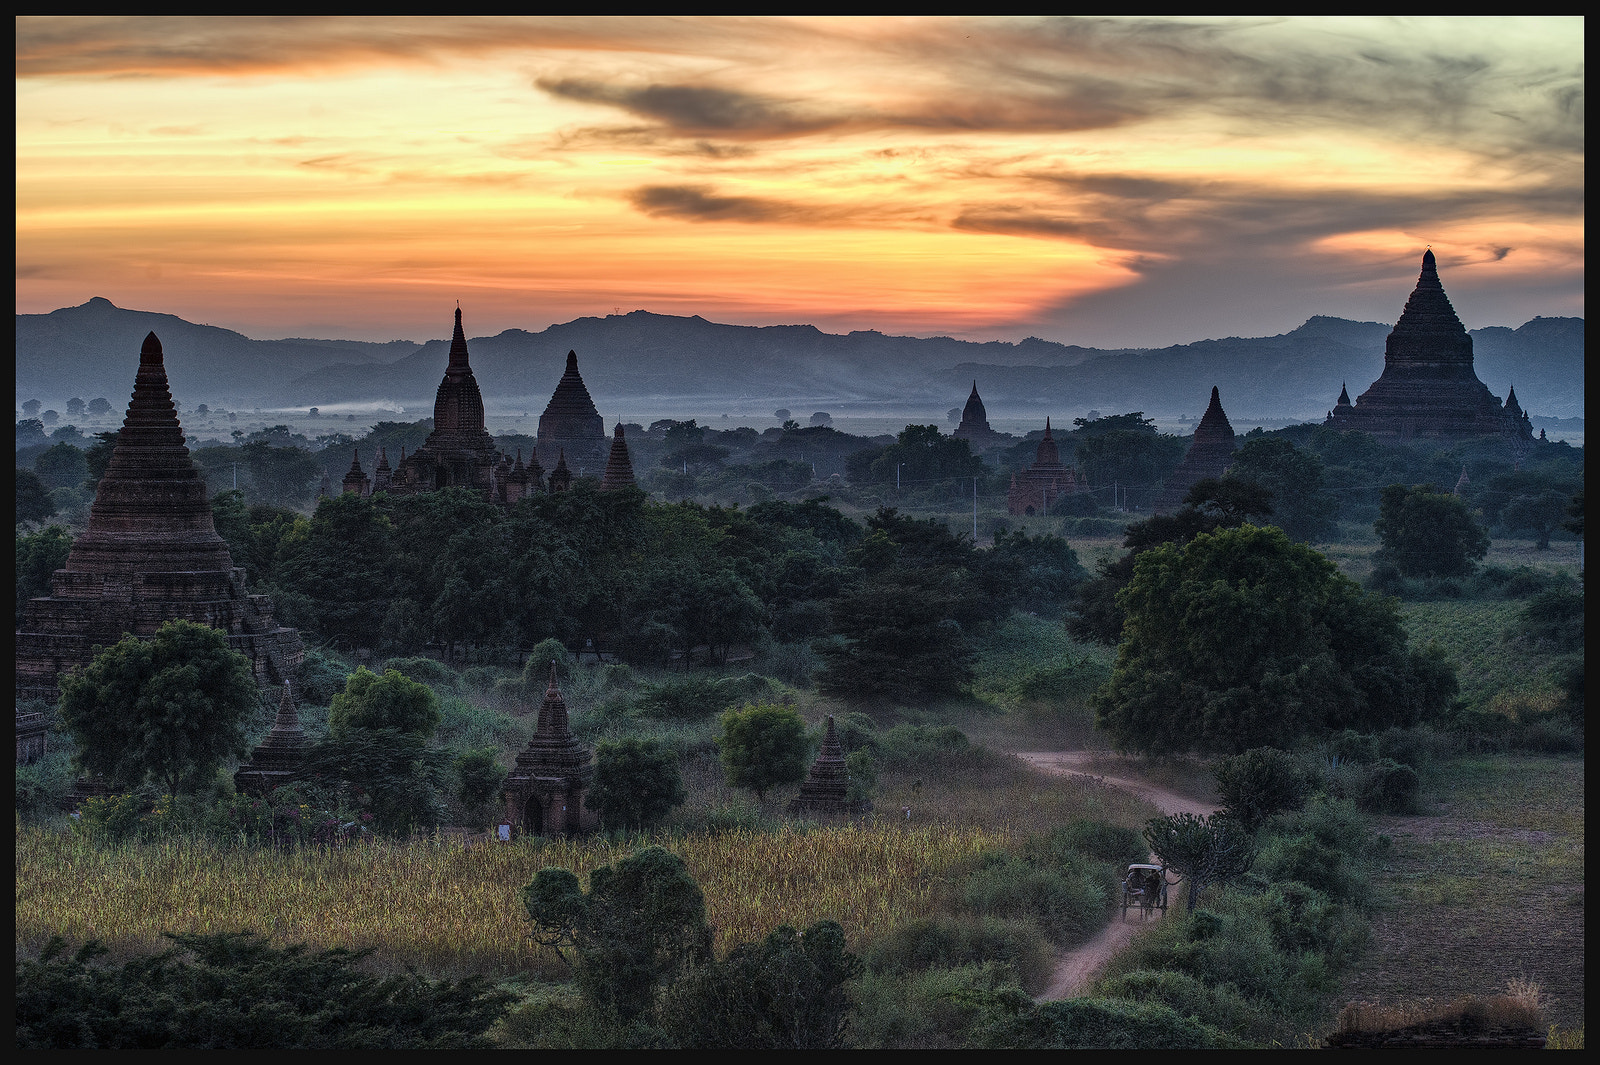 Photograph Temples Of Dusk by Jon Sheer on 500px